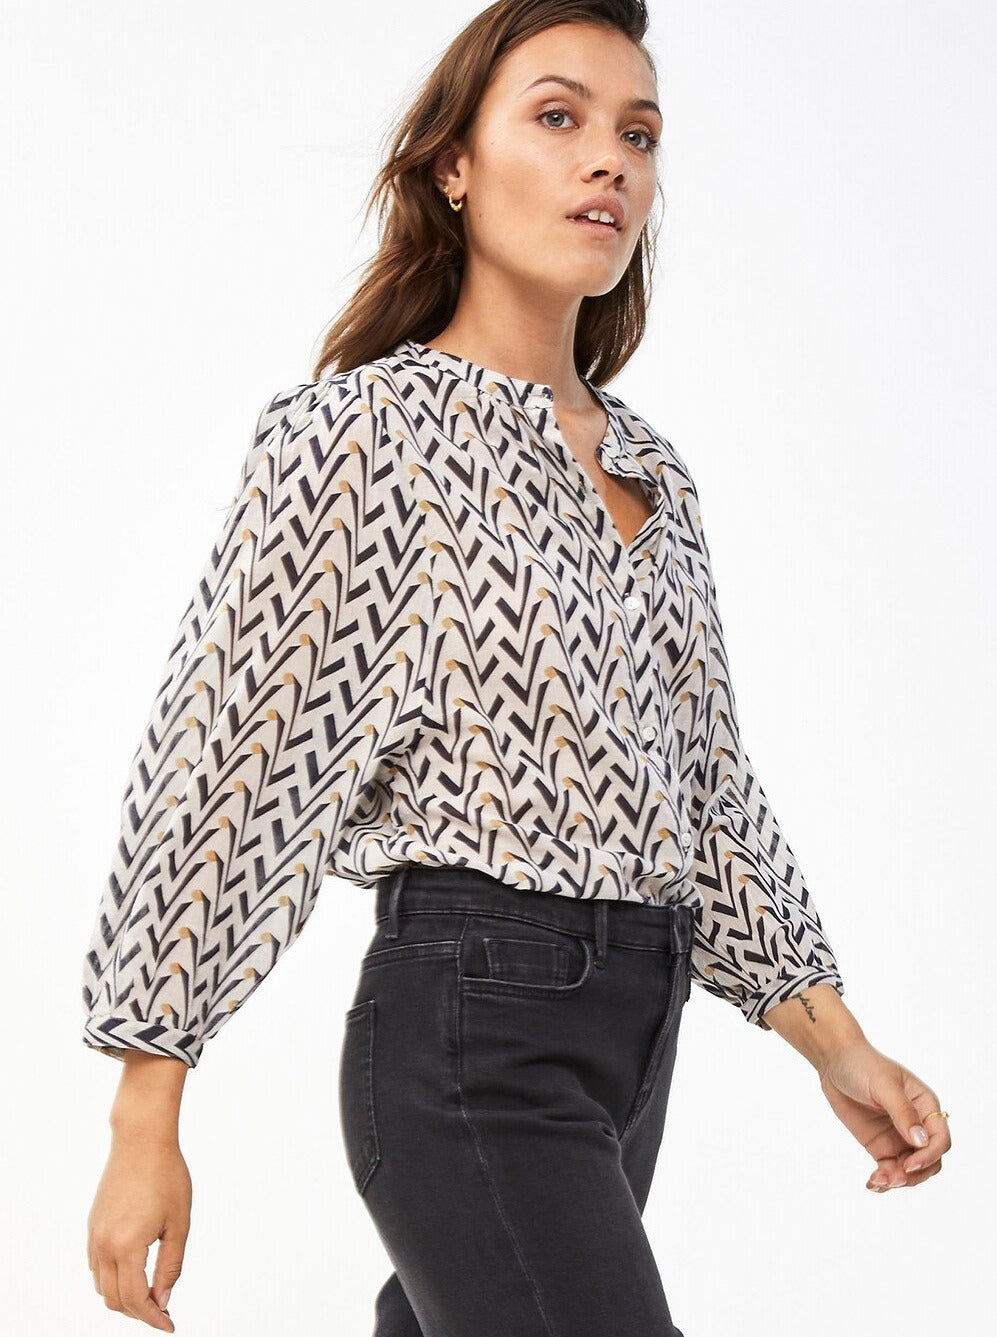 Lara Coconut Blouse